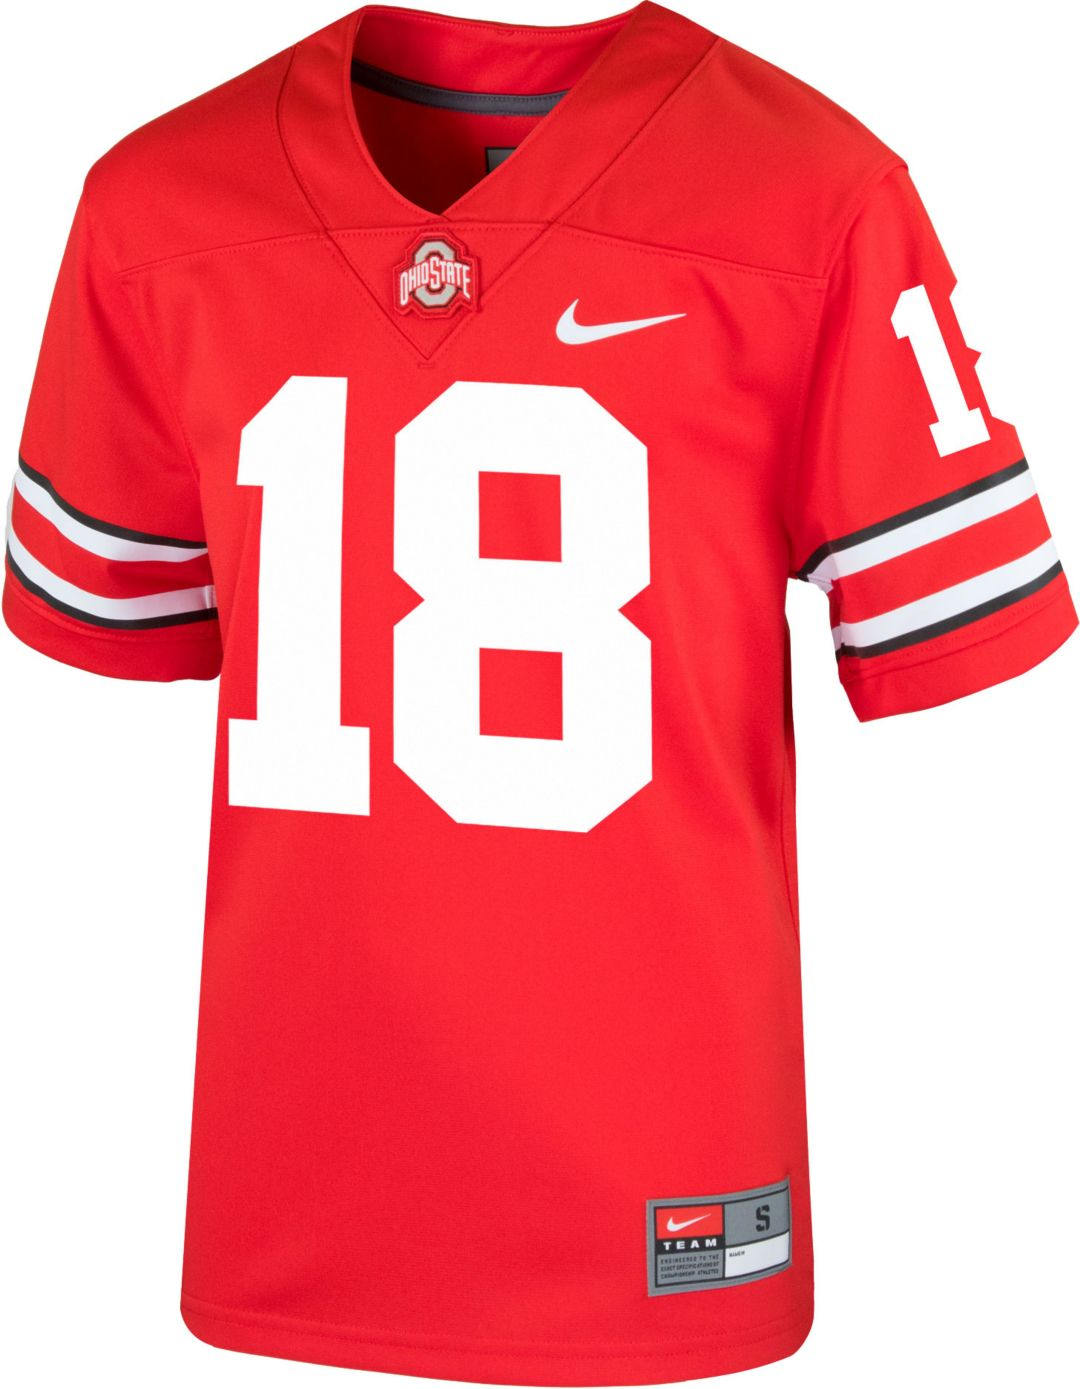 newest collection 1e8bc ab739 Nike Youth Ohio State Buckeyes #18 Scarlet Game Football Jersey